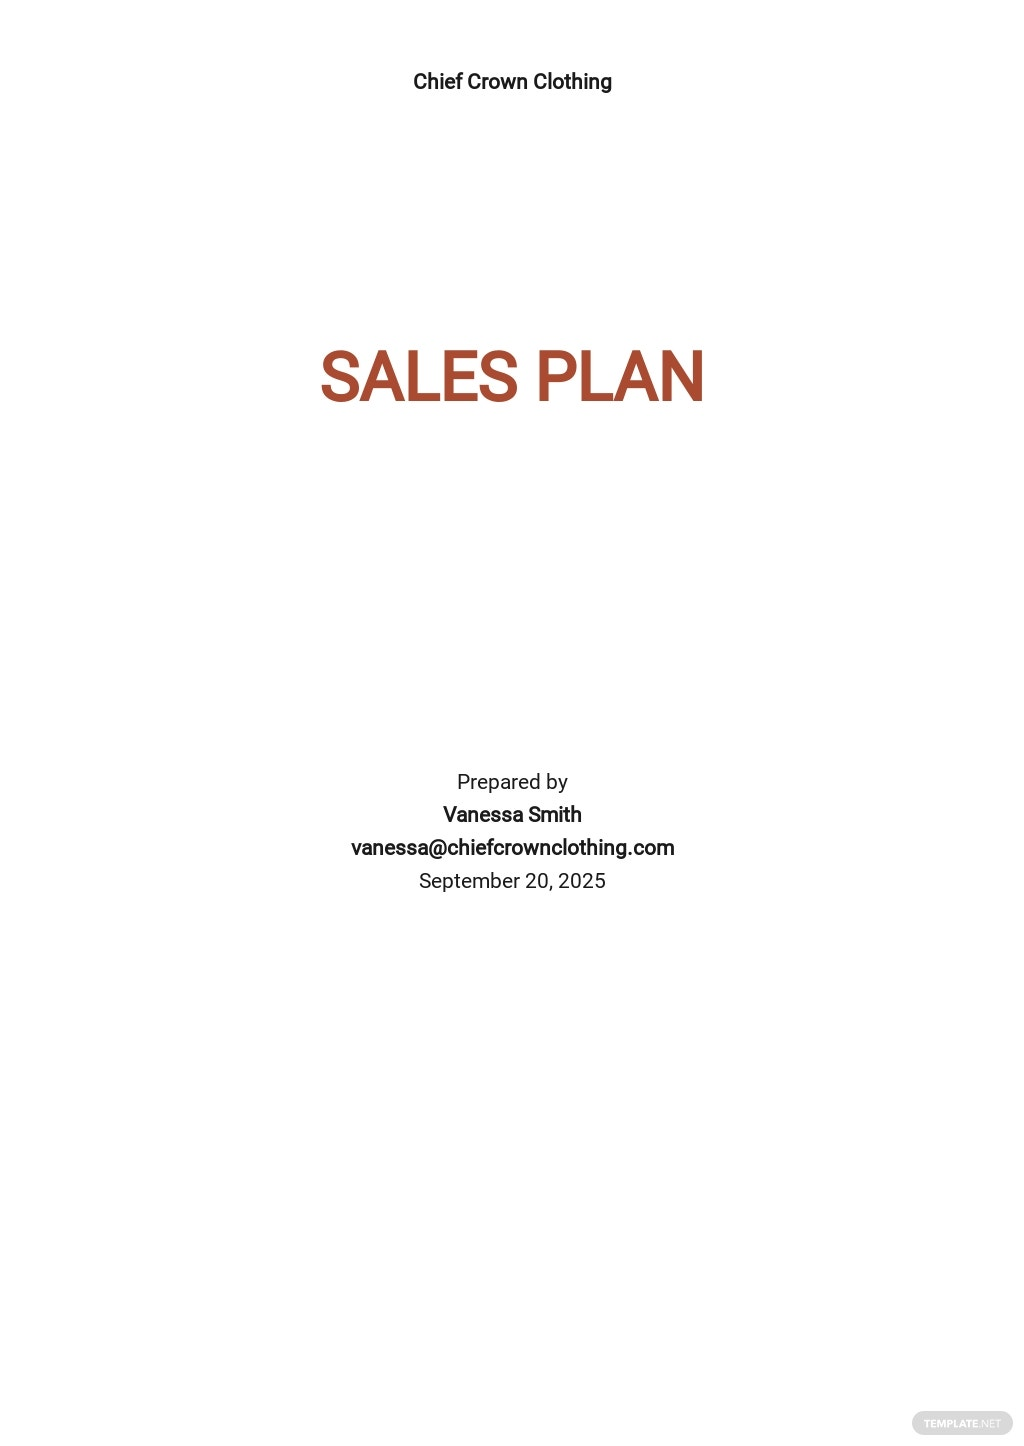 New product Sales Plan Template